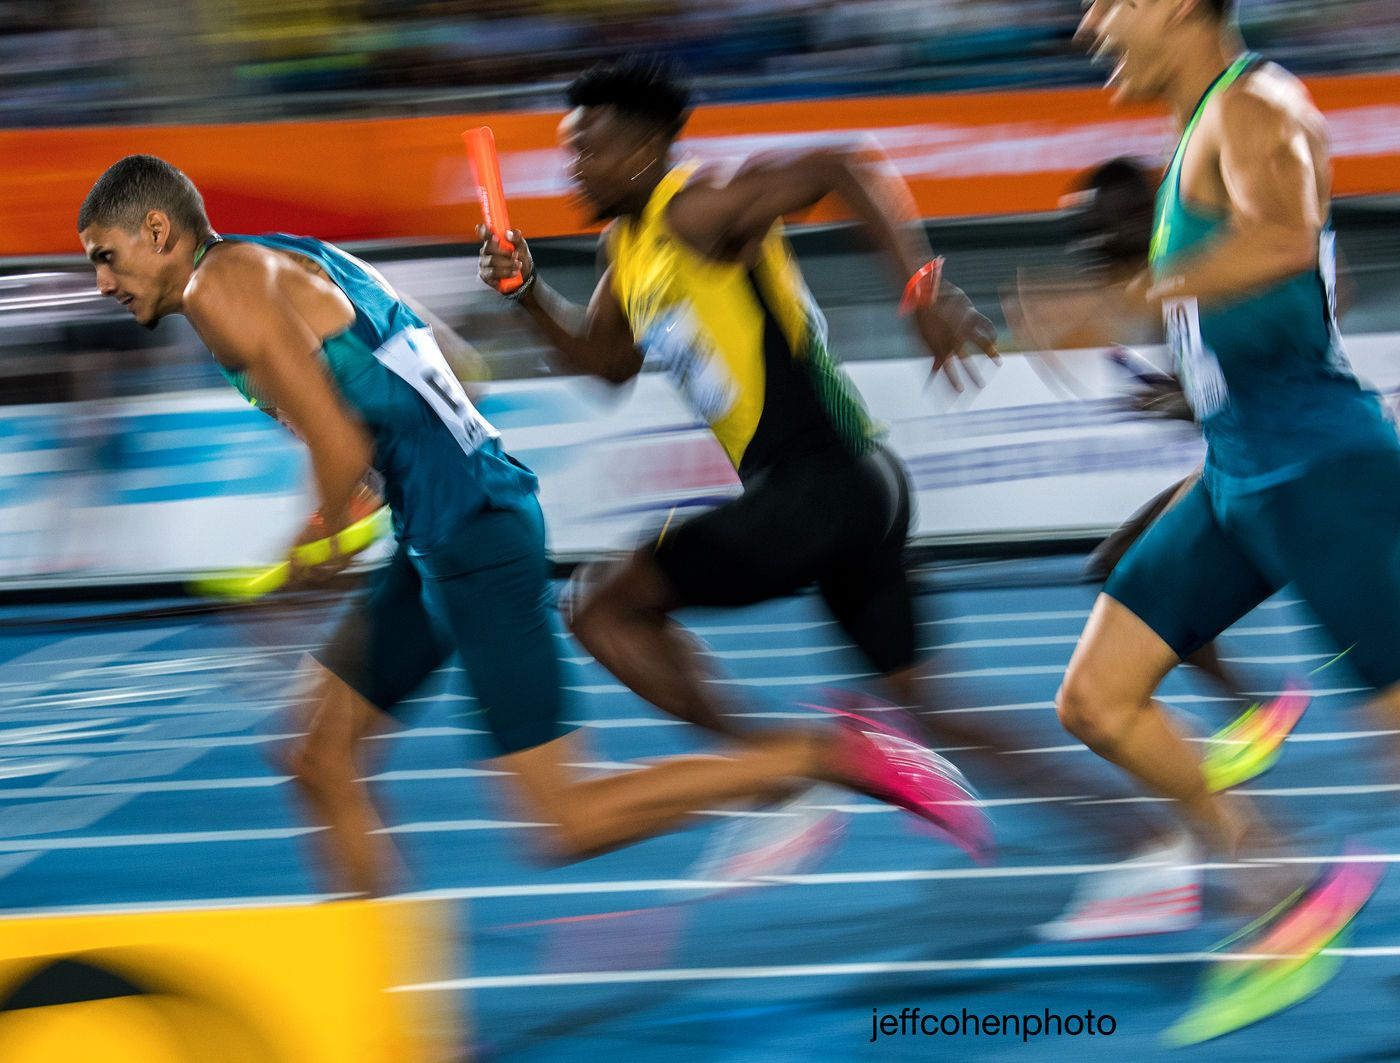 1r2017_bahamas_relays_day_1_4x400m_blur____jeff_cohen_photo__1722_web.jpg